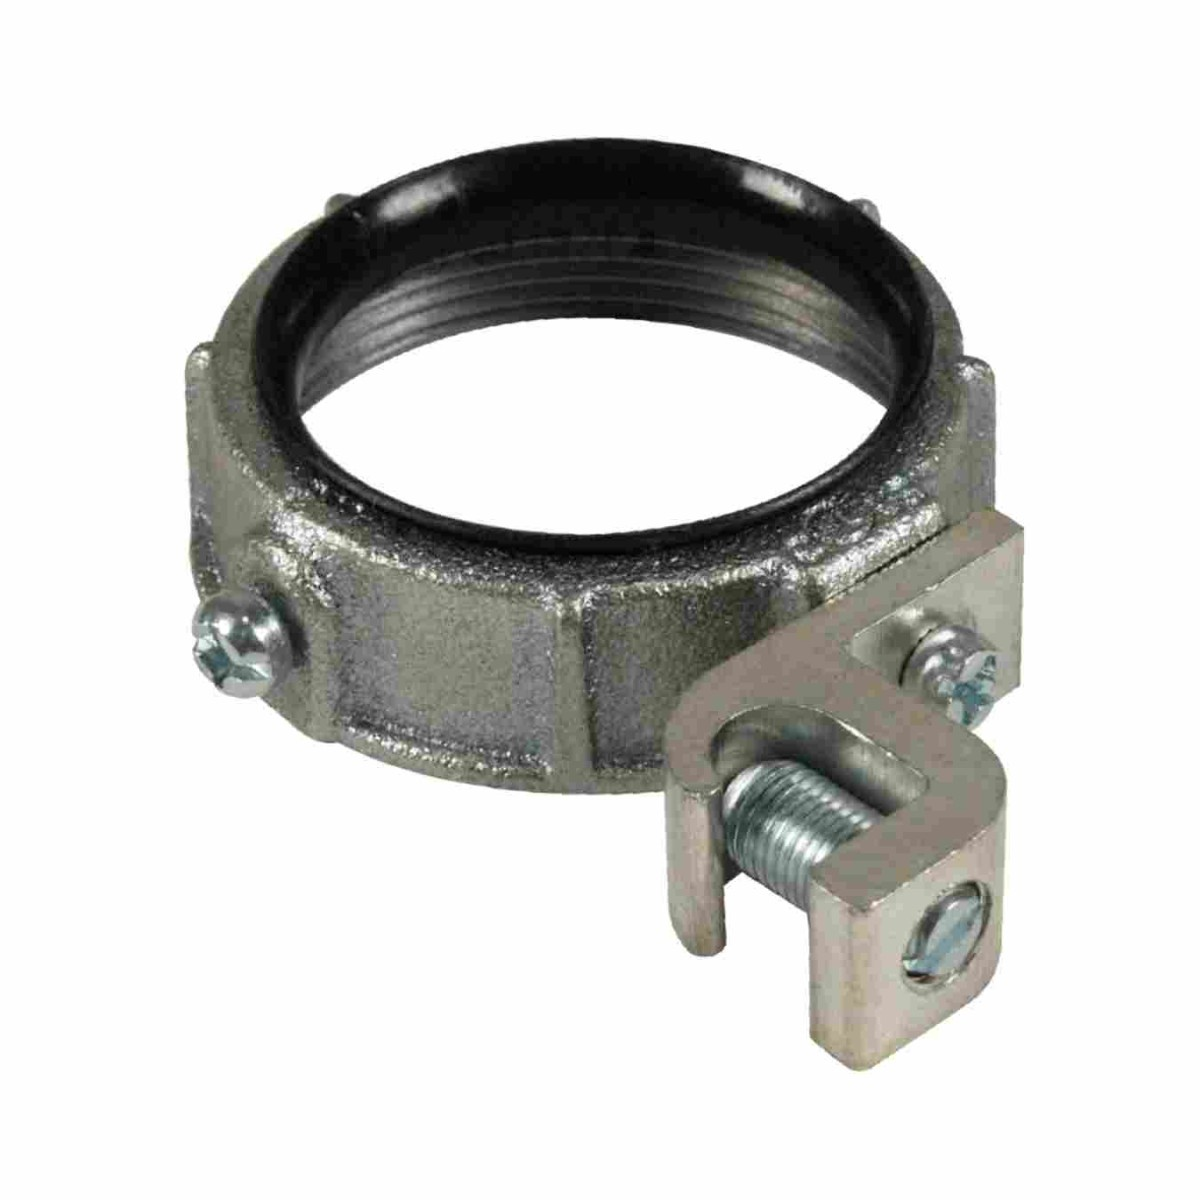 Malleable ground bushings insulated w universal lay in lug